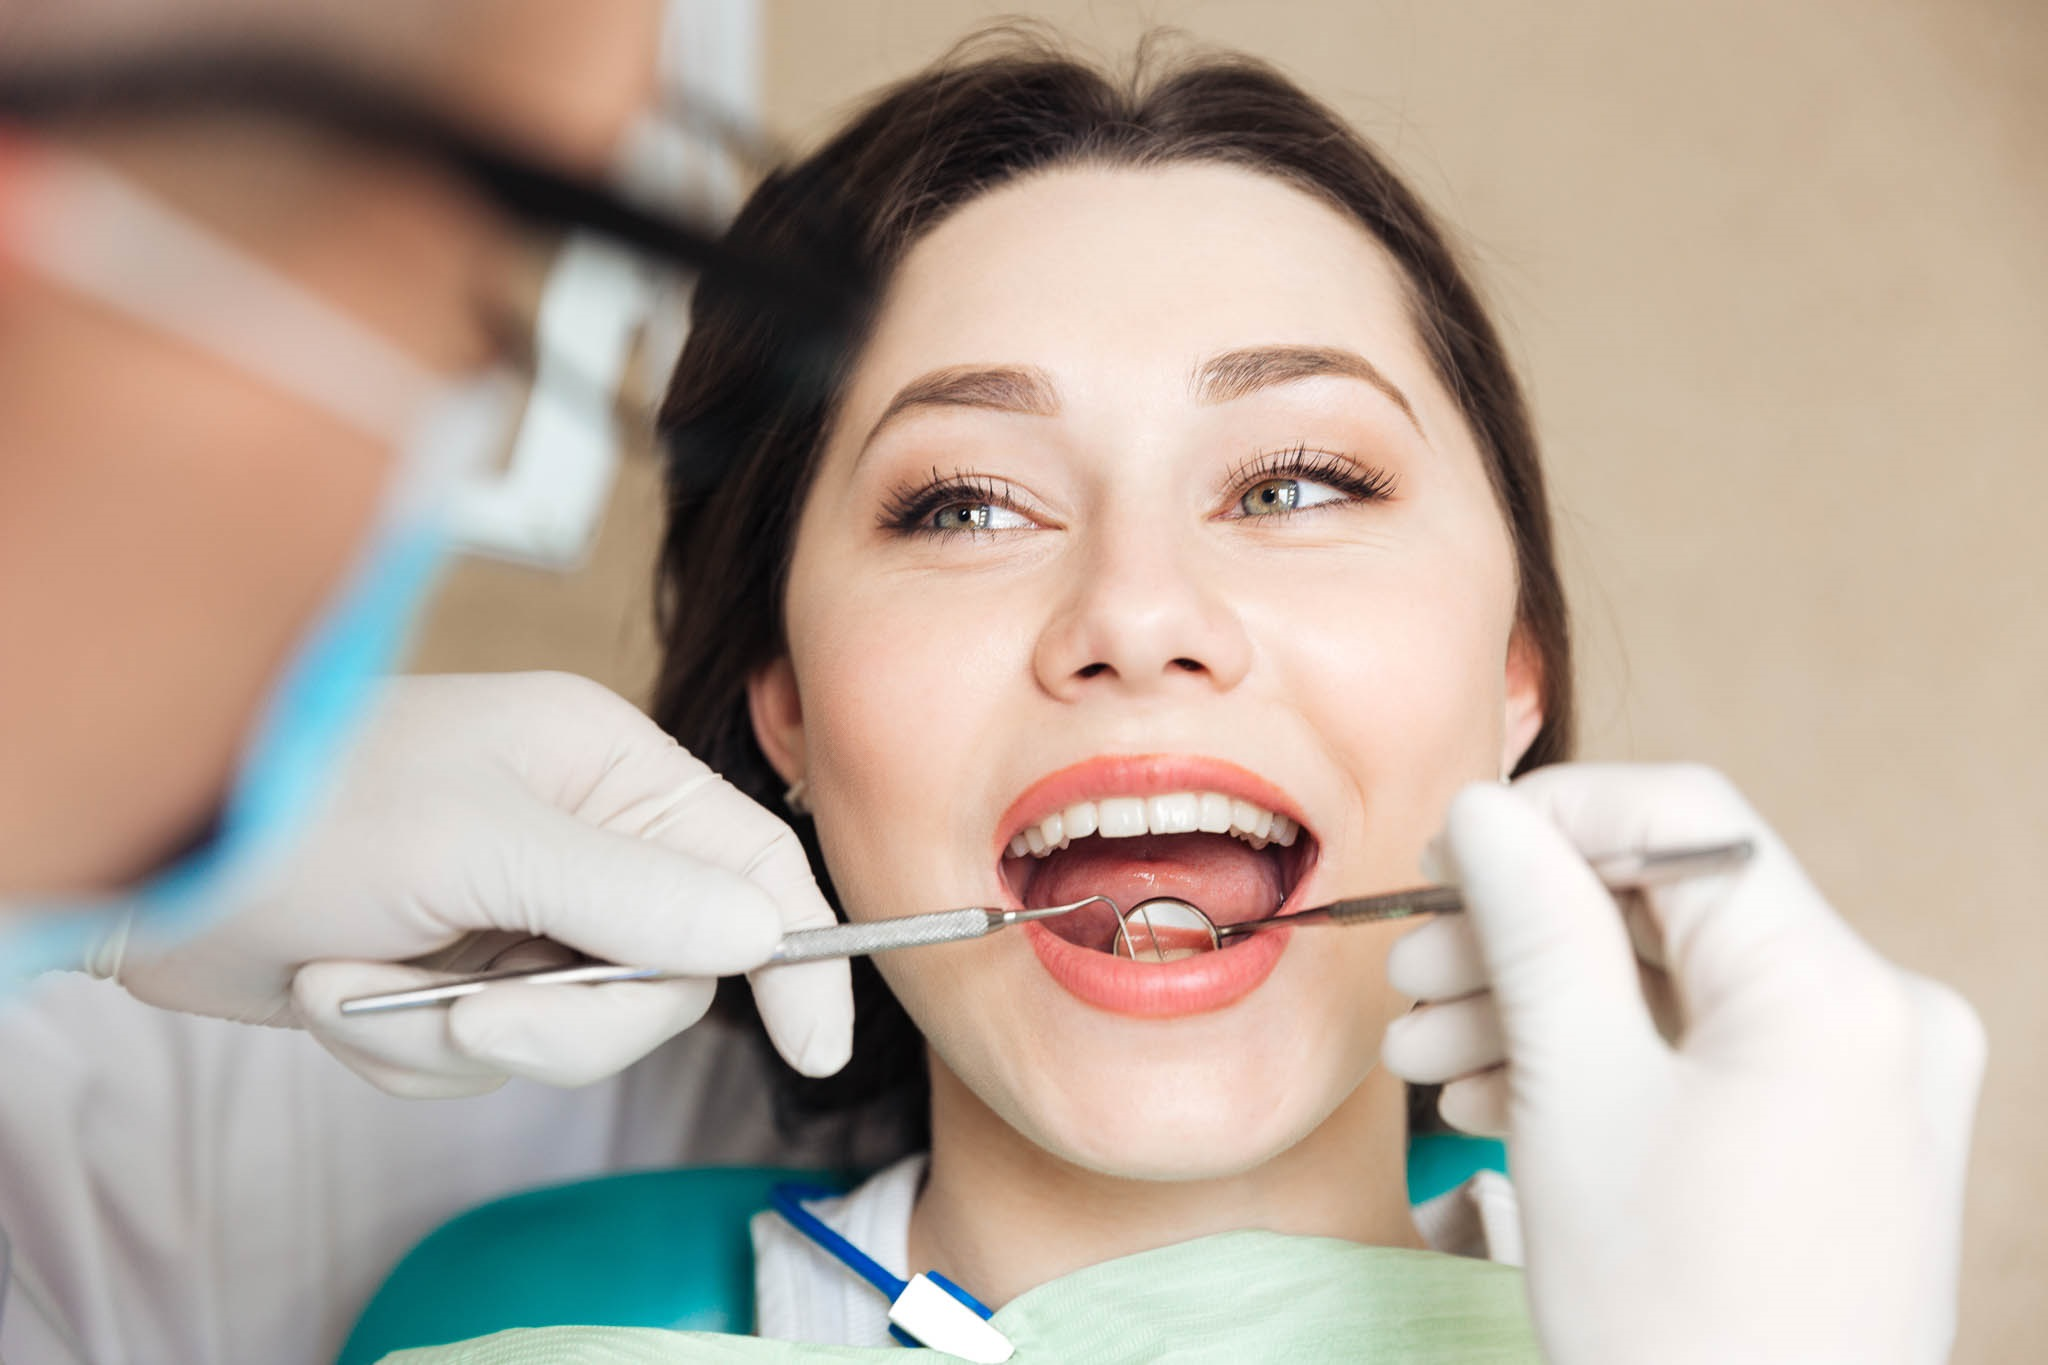 Dental Cleanings: The 3 Types